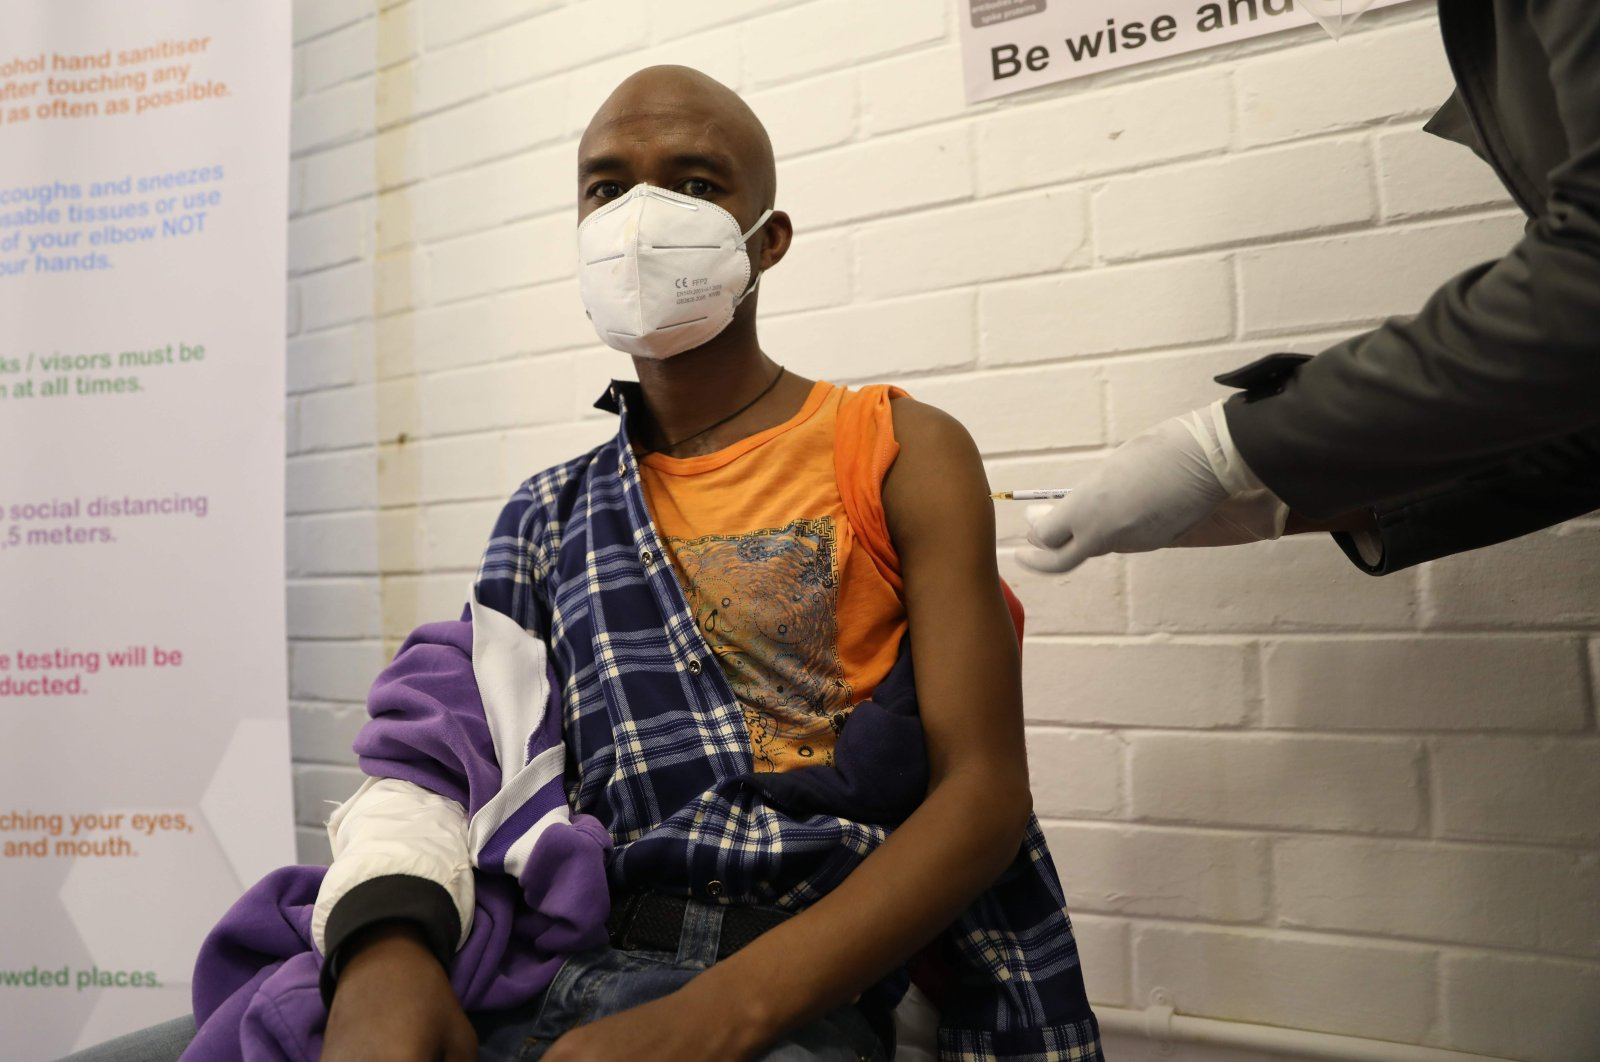 One of the first South African Oxford vaccine trialists looks on as a medical worker injects him with the clinical trial for a potential vaccine against COVID-19 at the Baragwanath hospital, Soweto, South Africa, June 24, 2020. (AFP Photo)